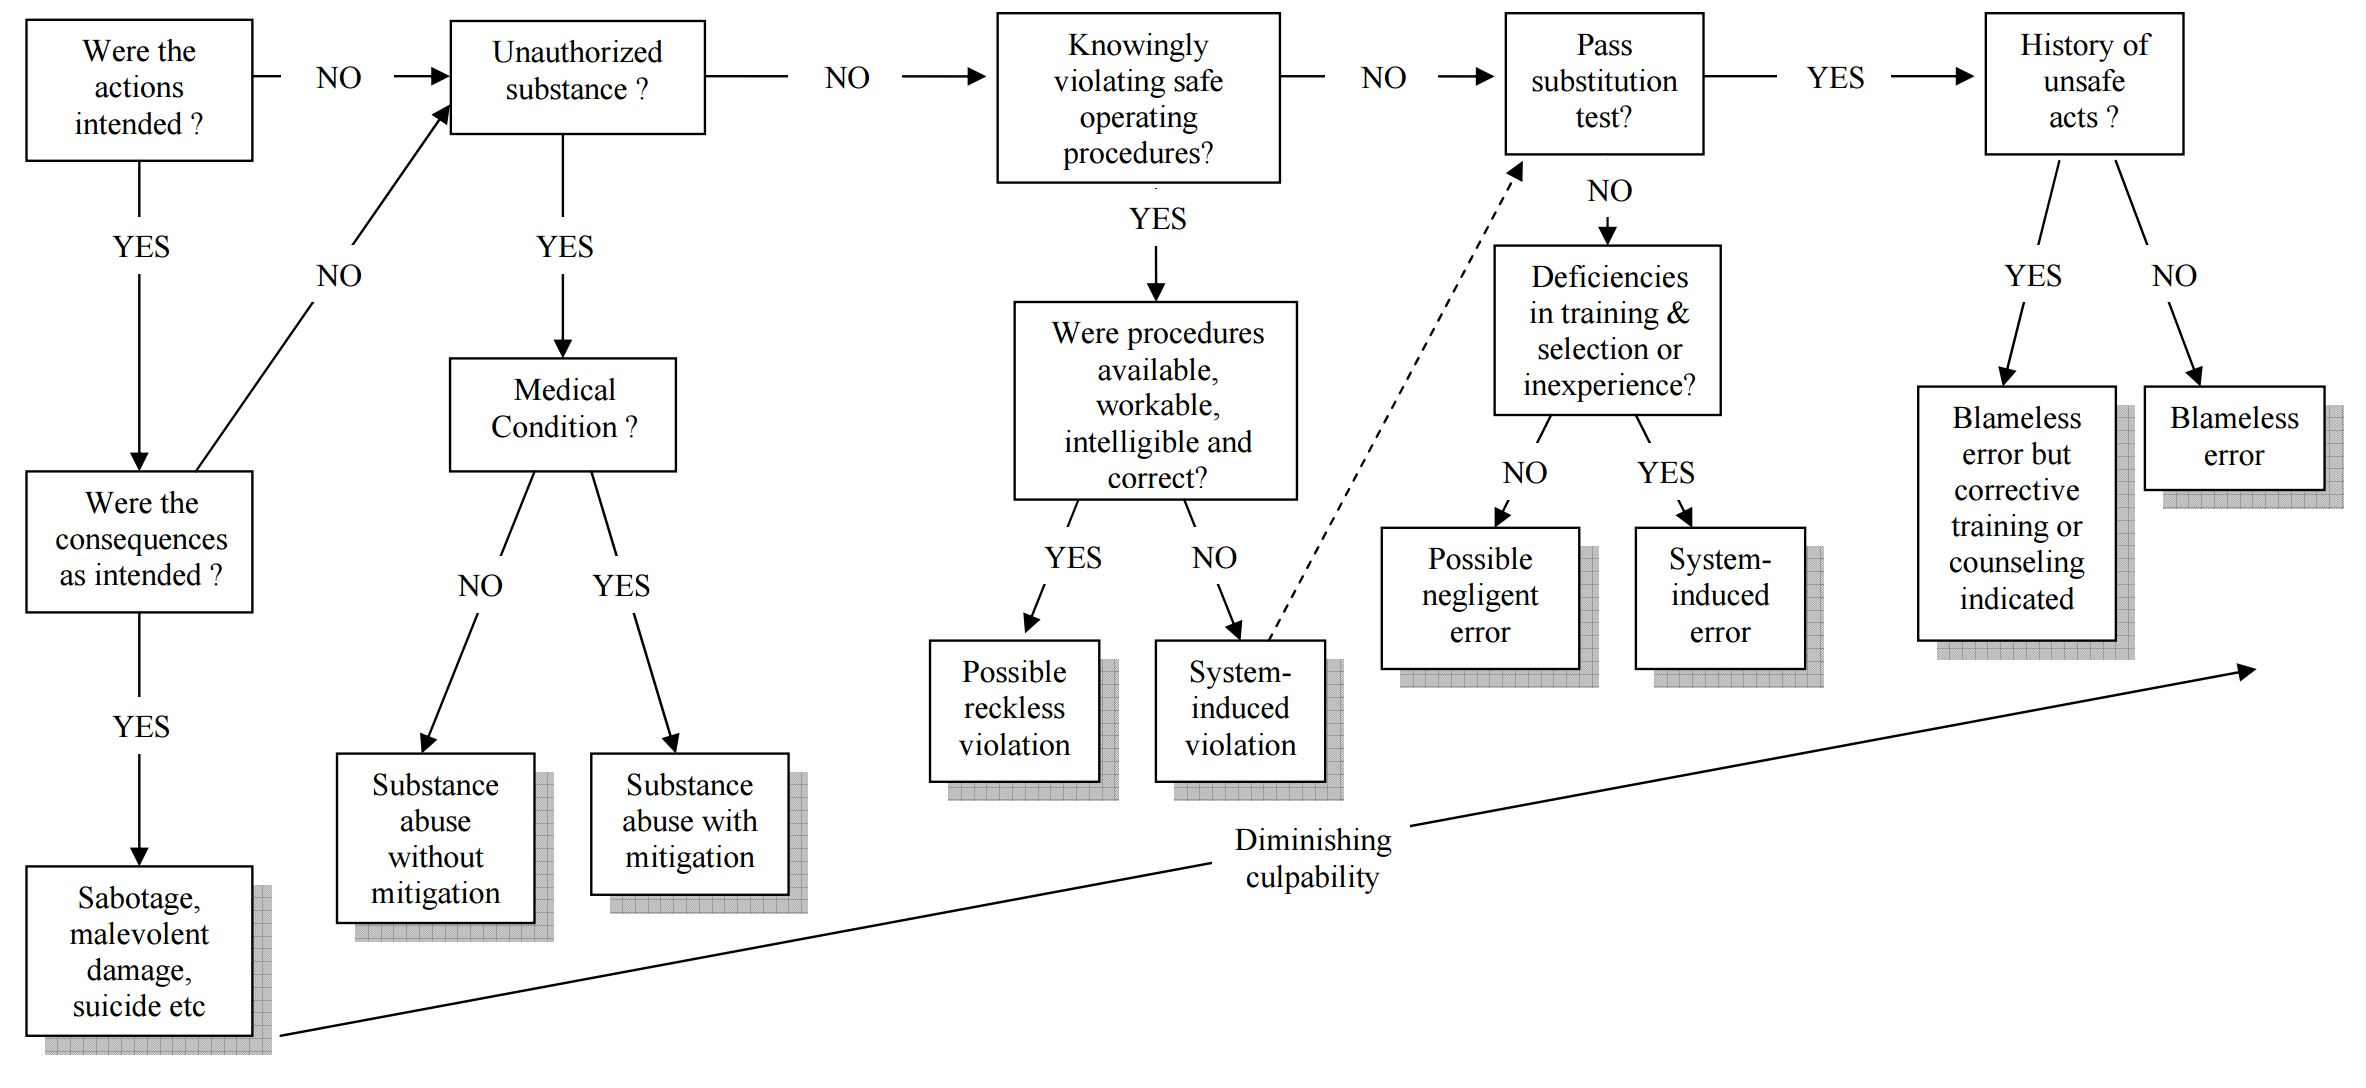 Prof James Reason (1997) - A decision tree for determining culpability for unsafe acts (Page 209)